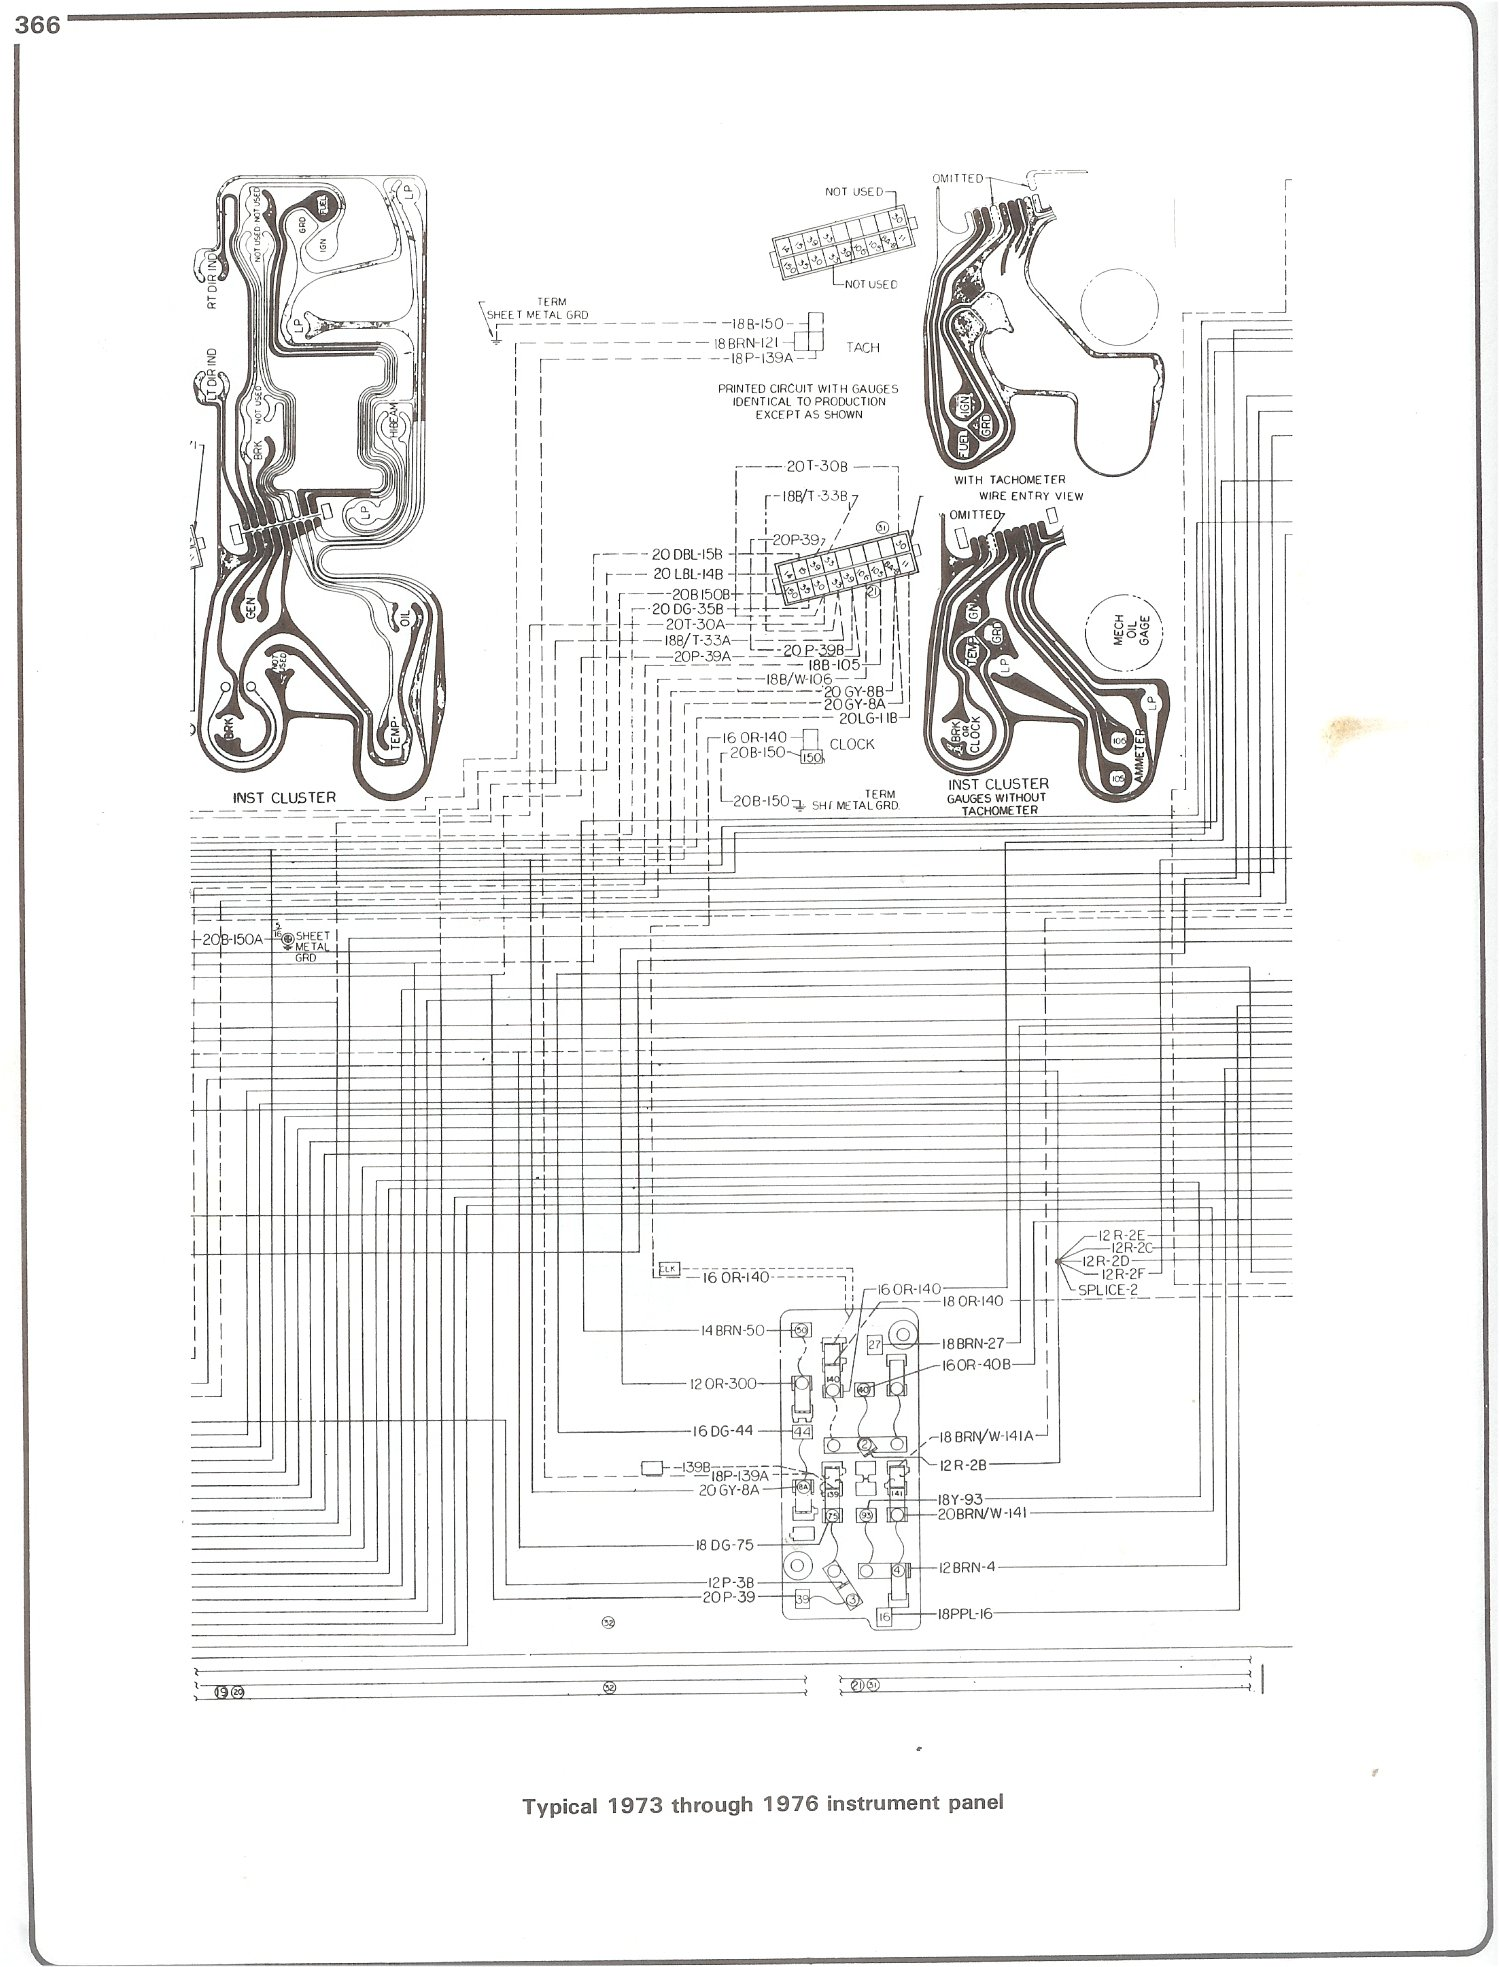 2007 Gmc Truck Wiring Diagrams Library Jimmy Instrument Cluster Diagram Power To Main Content Rh Uberstuff Co Sierra